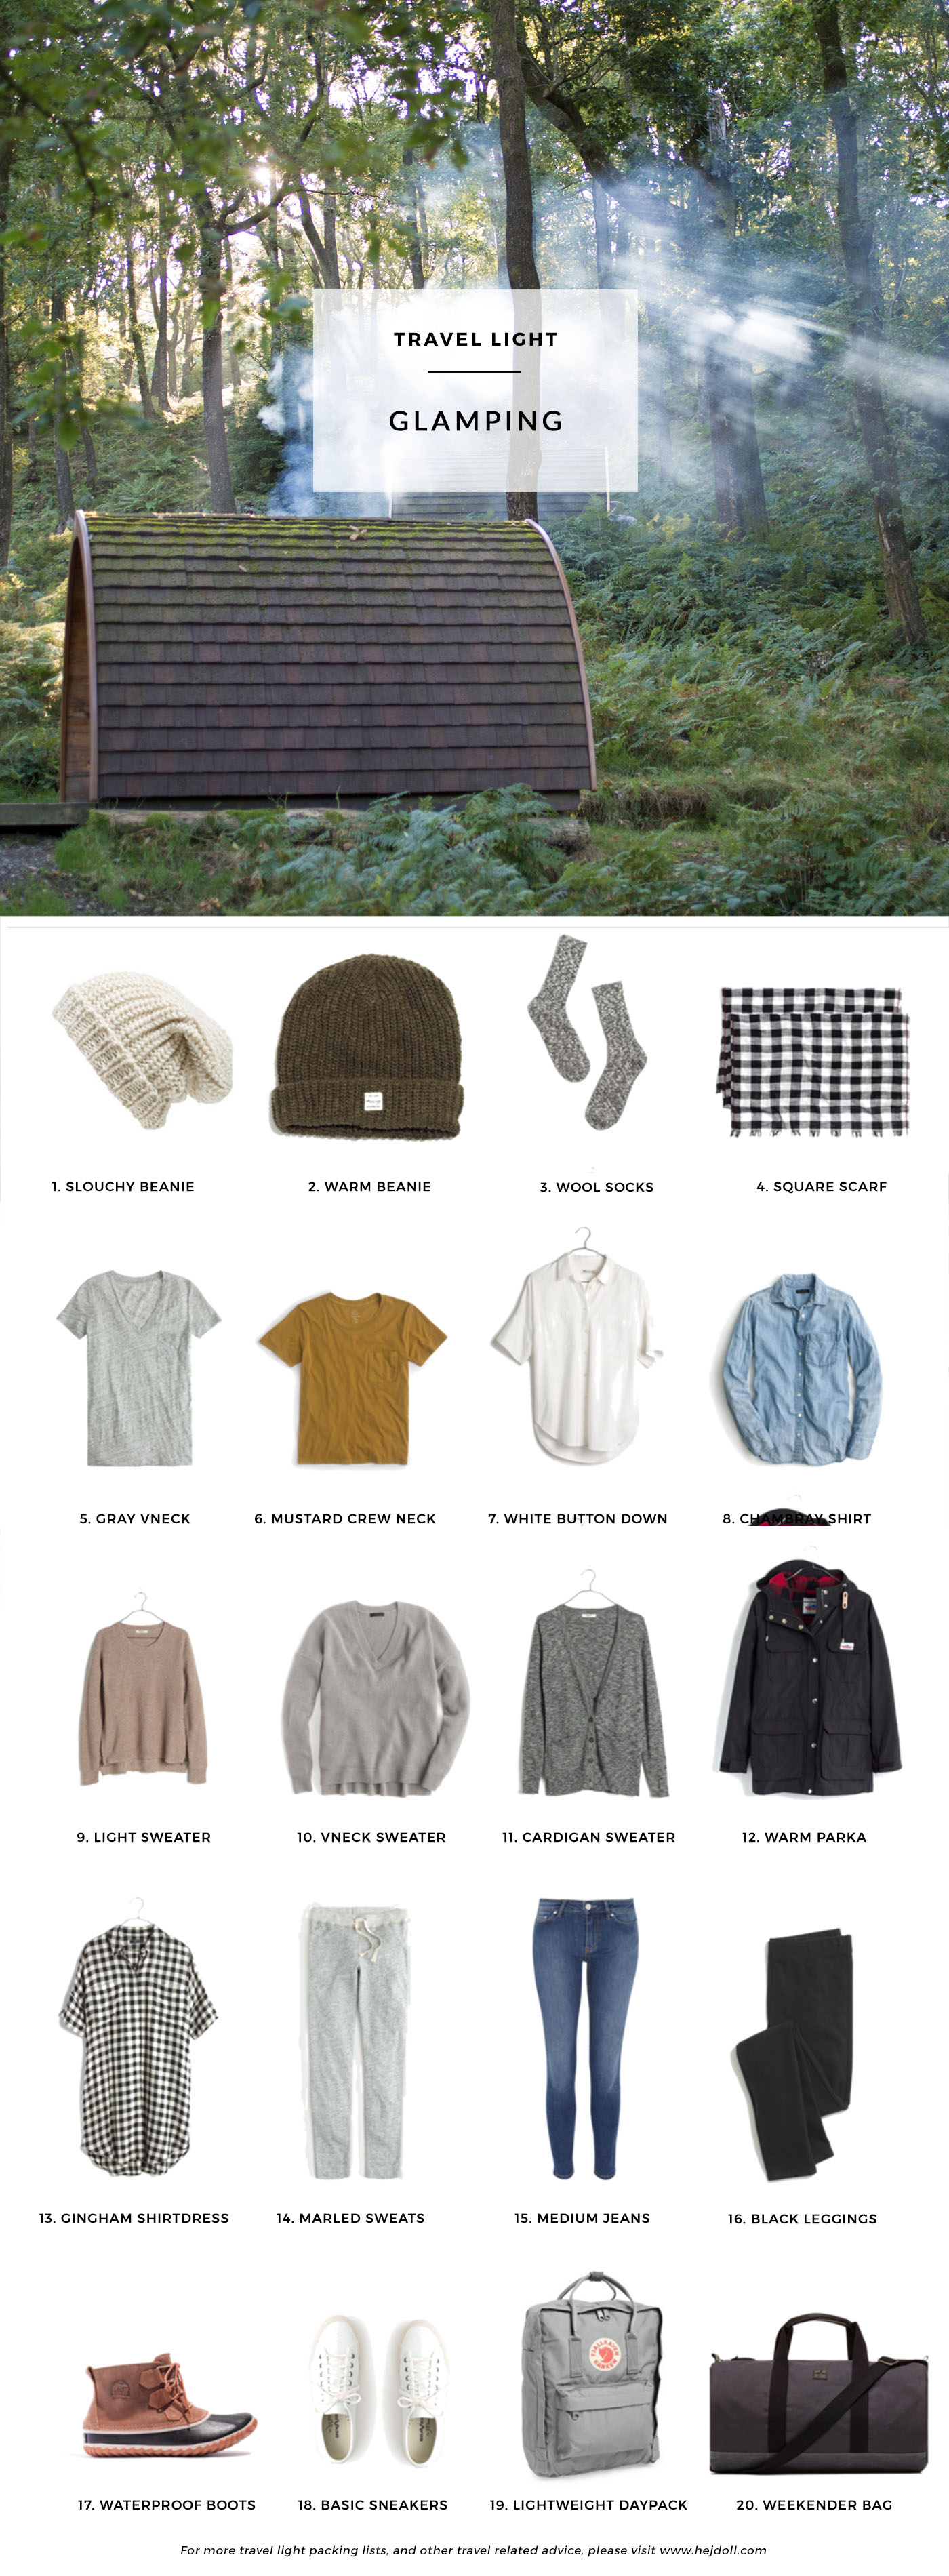 What to pack for a Winter Glamping Trip. 20 items, 10+ days/outfits, 1 carry on suitcase. #travellight #packingtips #traveltips